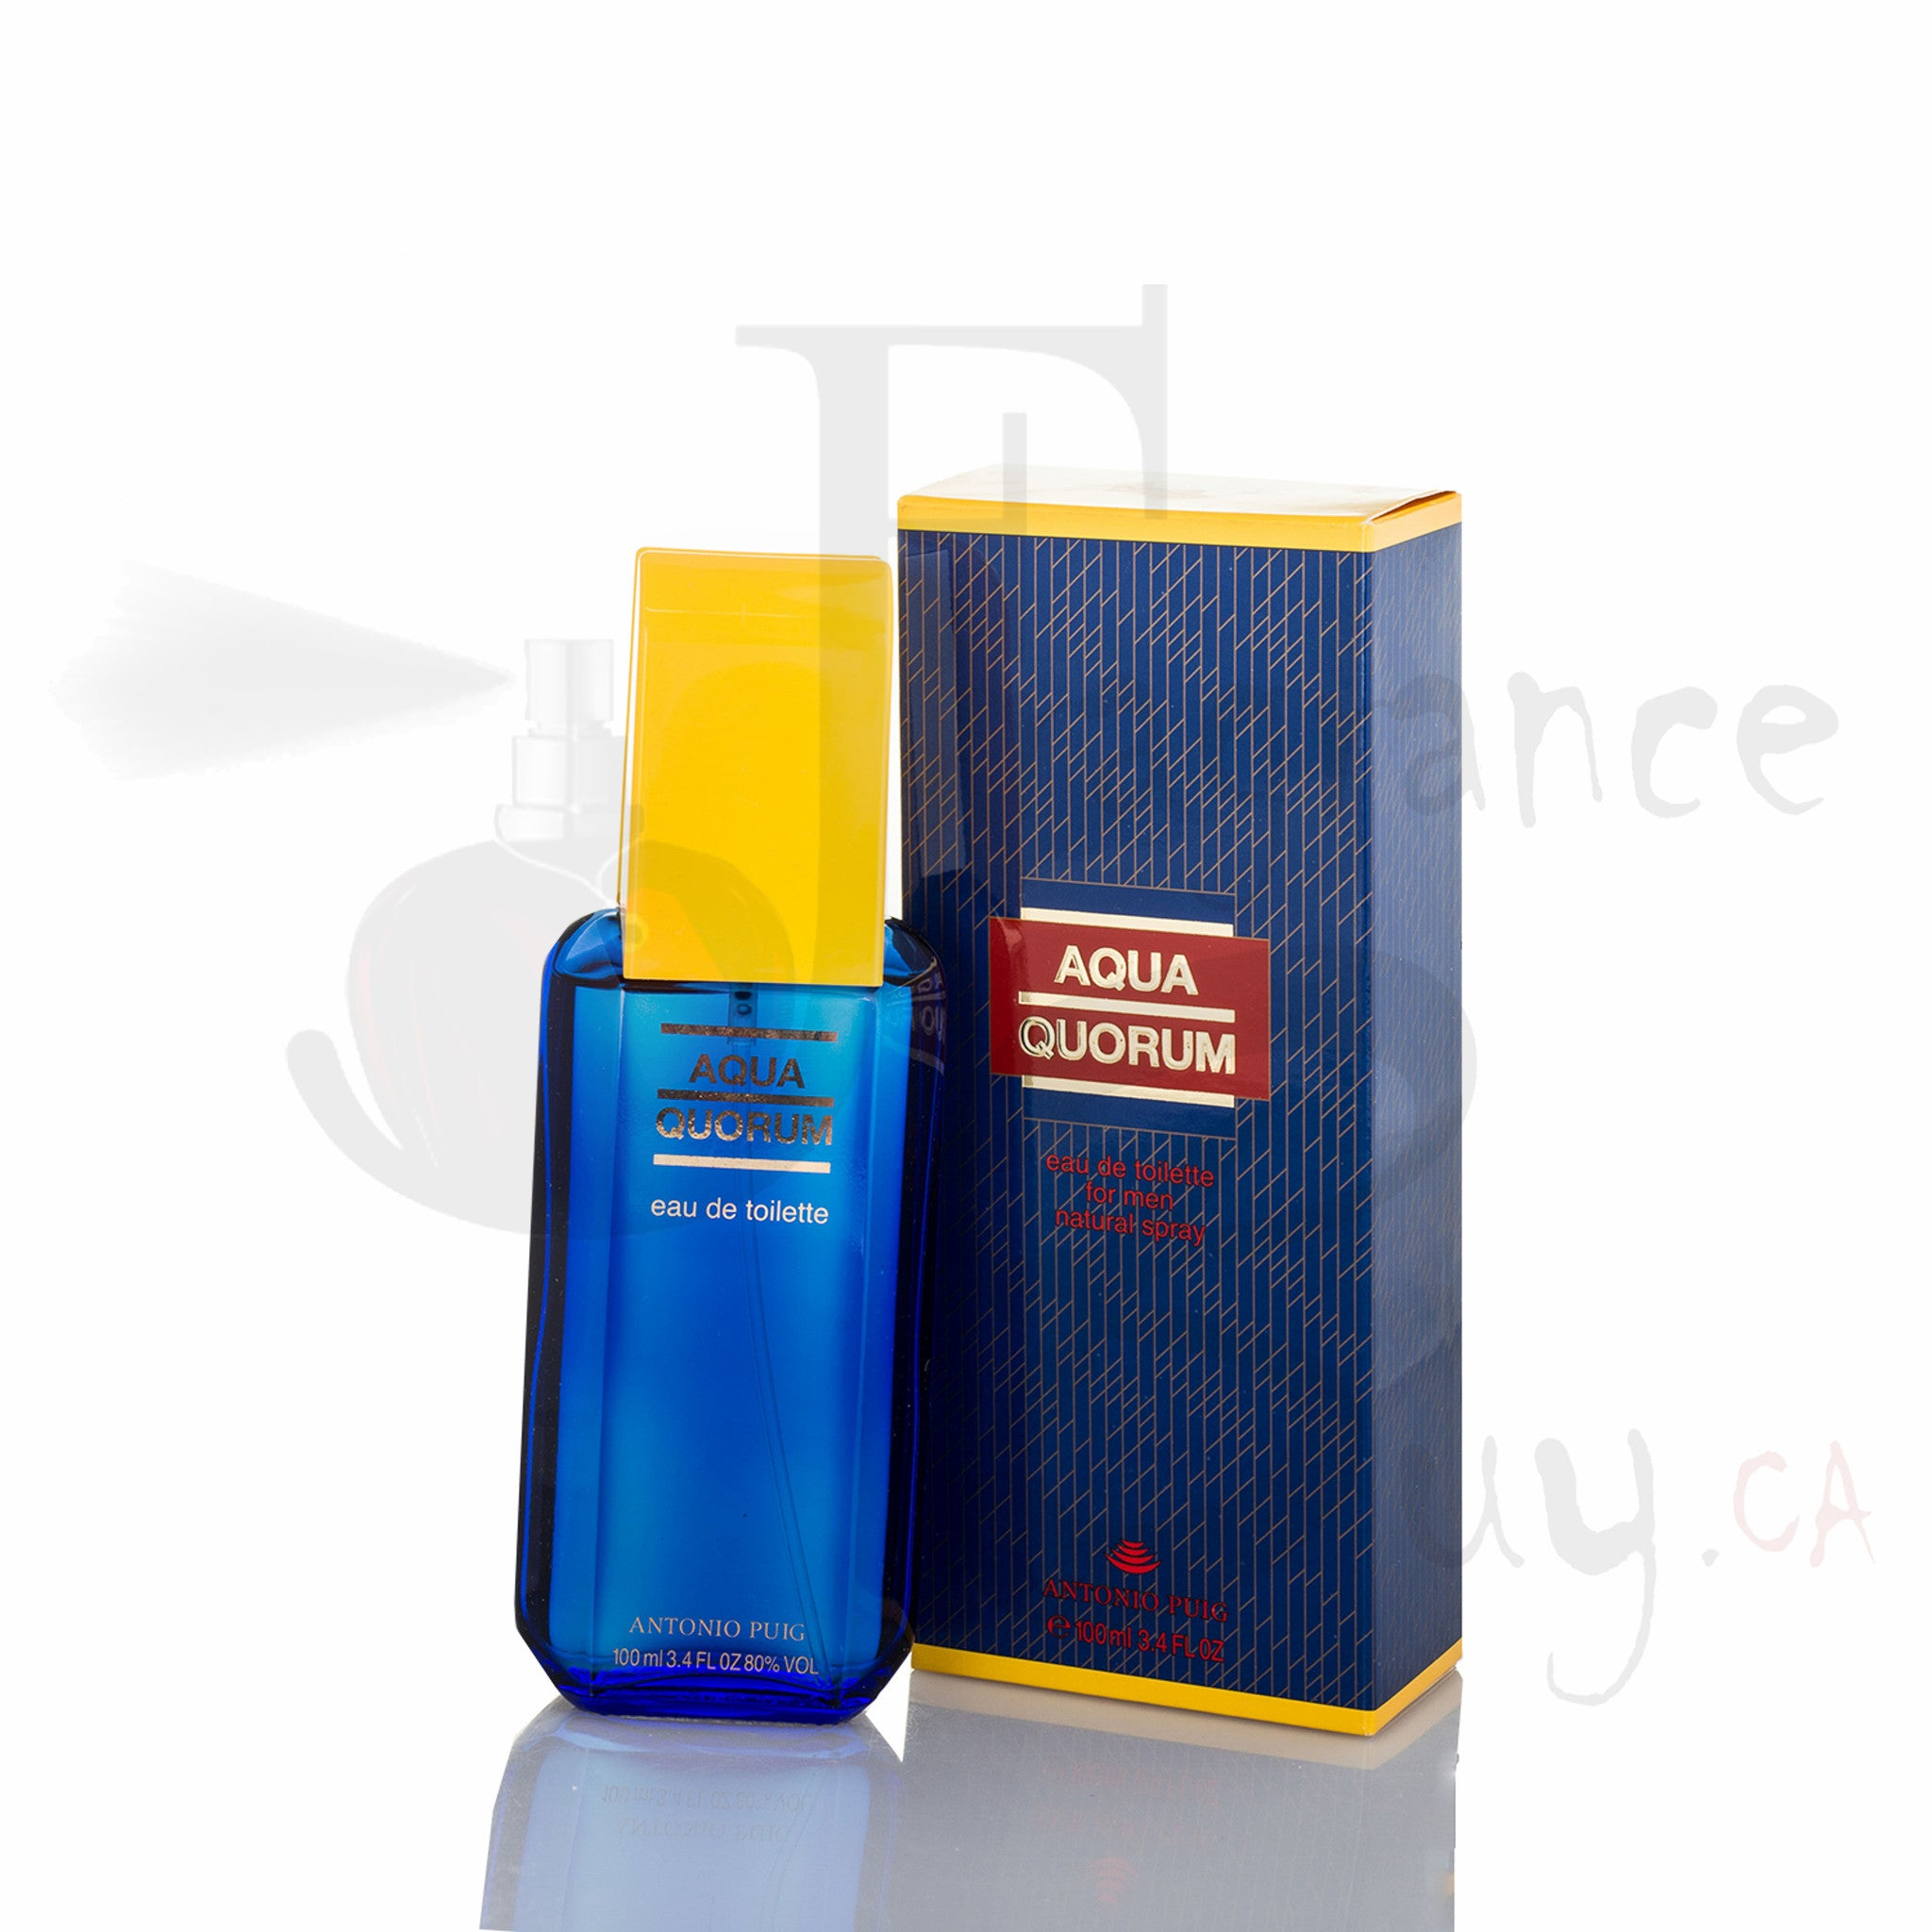 Antonio Puig Aqua Quorum Cologne Man